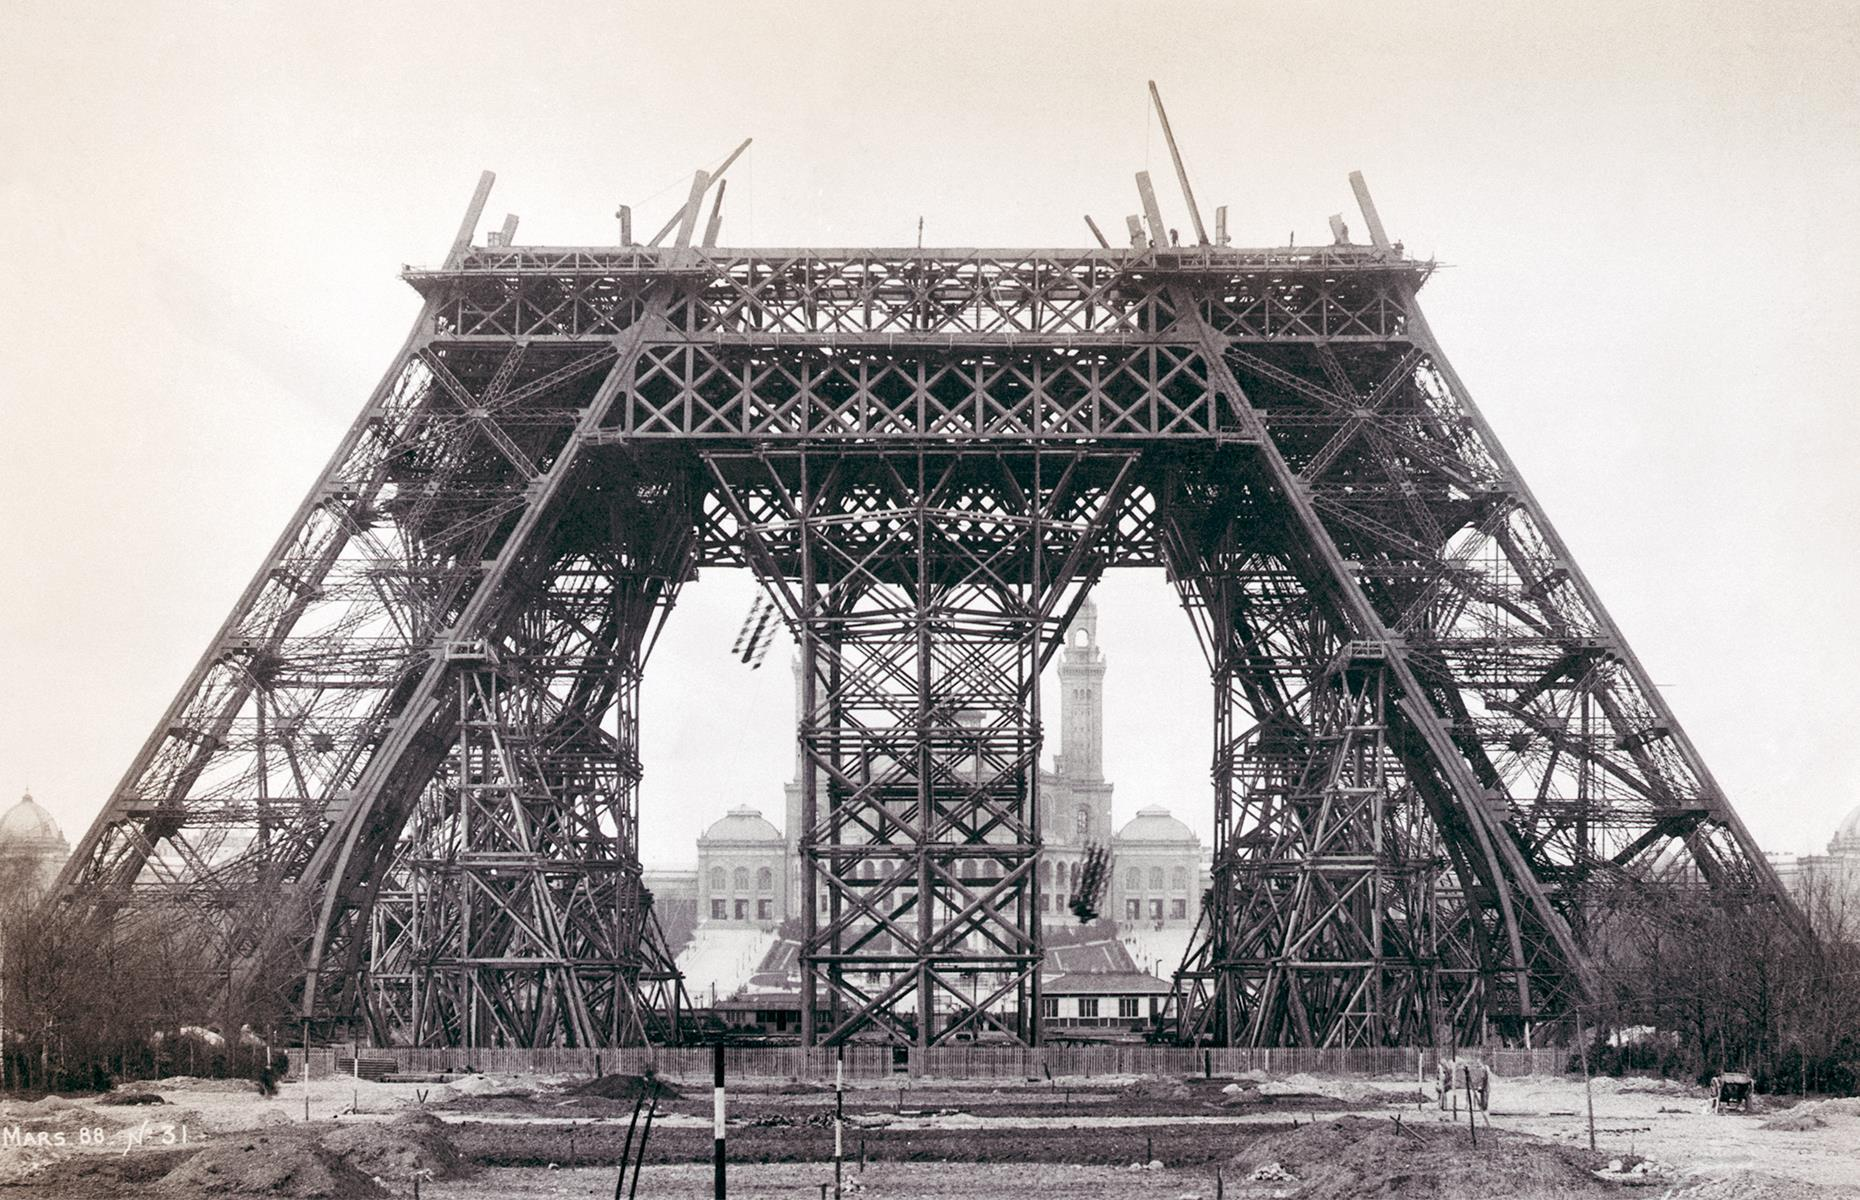 Slide 6 of 32: It's hard to imagine the Paris skyline without the Eiffel Tower, but the landmark was originally intended to be a temporary installation. It was built for the International Exposition of 1889, serving as the impressive gateway to the show, with the tower itself soaring to 984 feet (300m). It was due to be pulled down in 1909 which would have given it a 20-year lifespan.